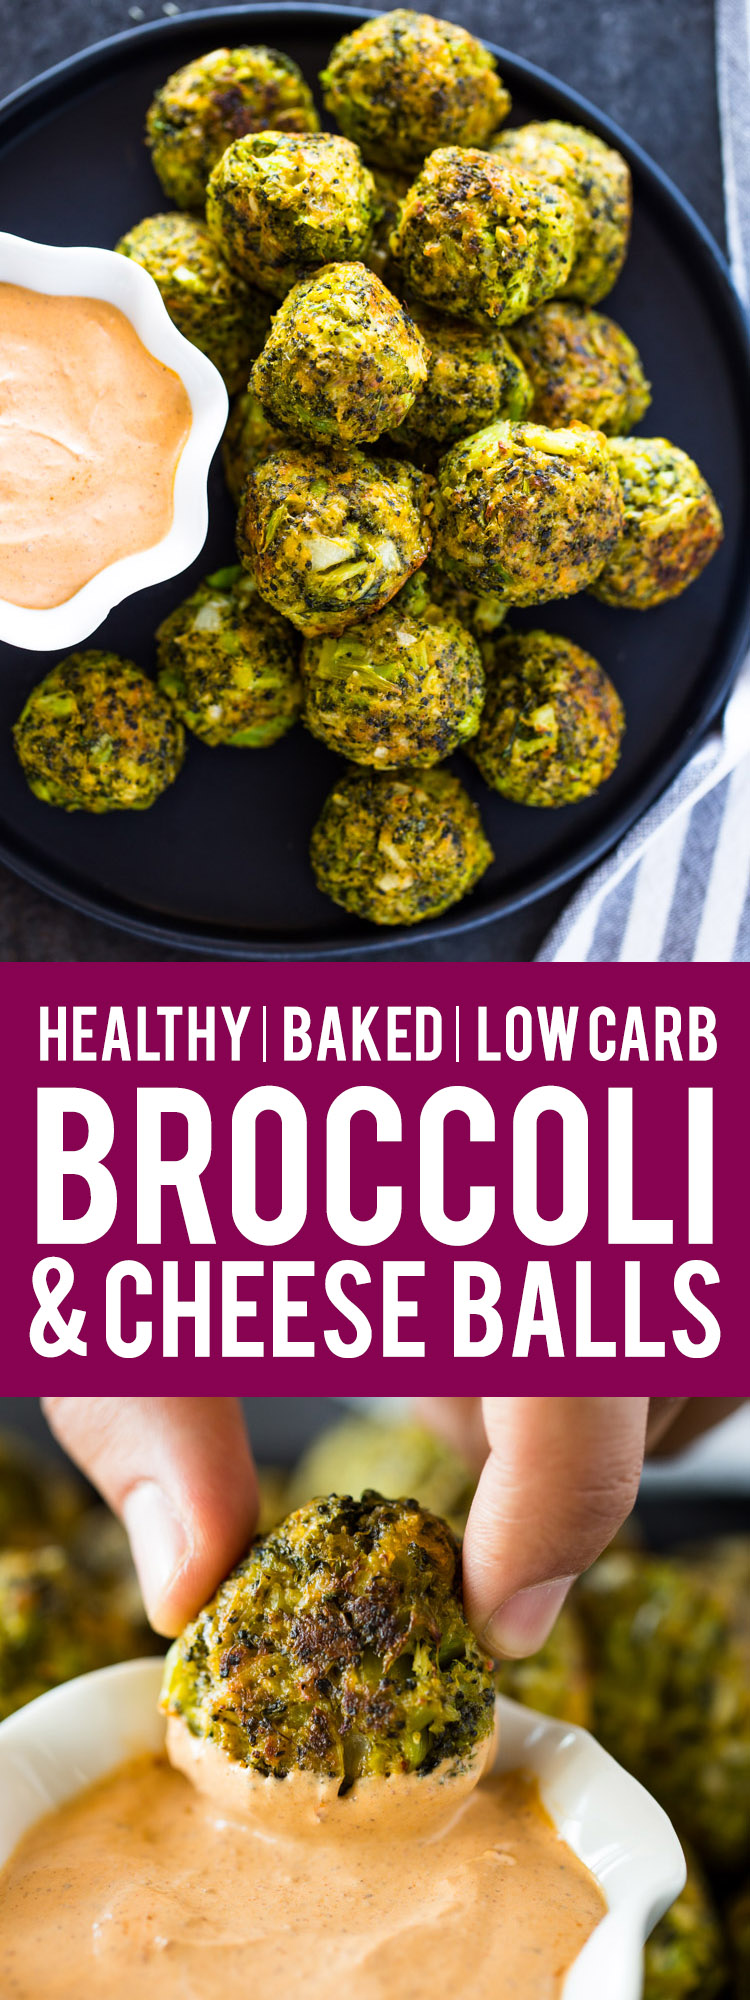 Broccoli Cheese Balls (Low Carb / Keto Friendly)